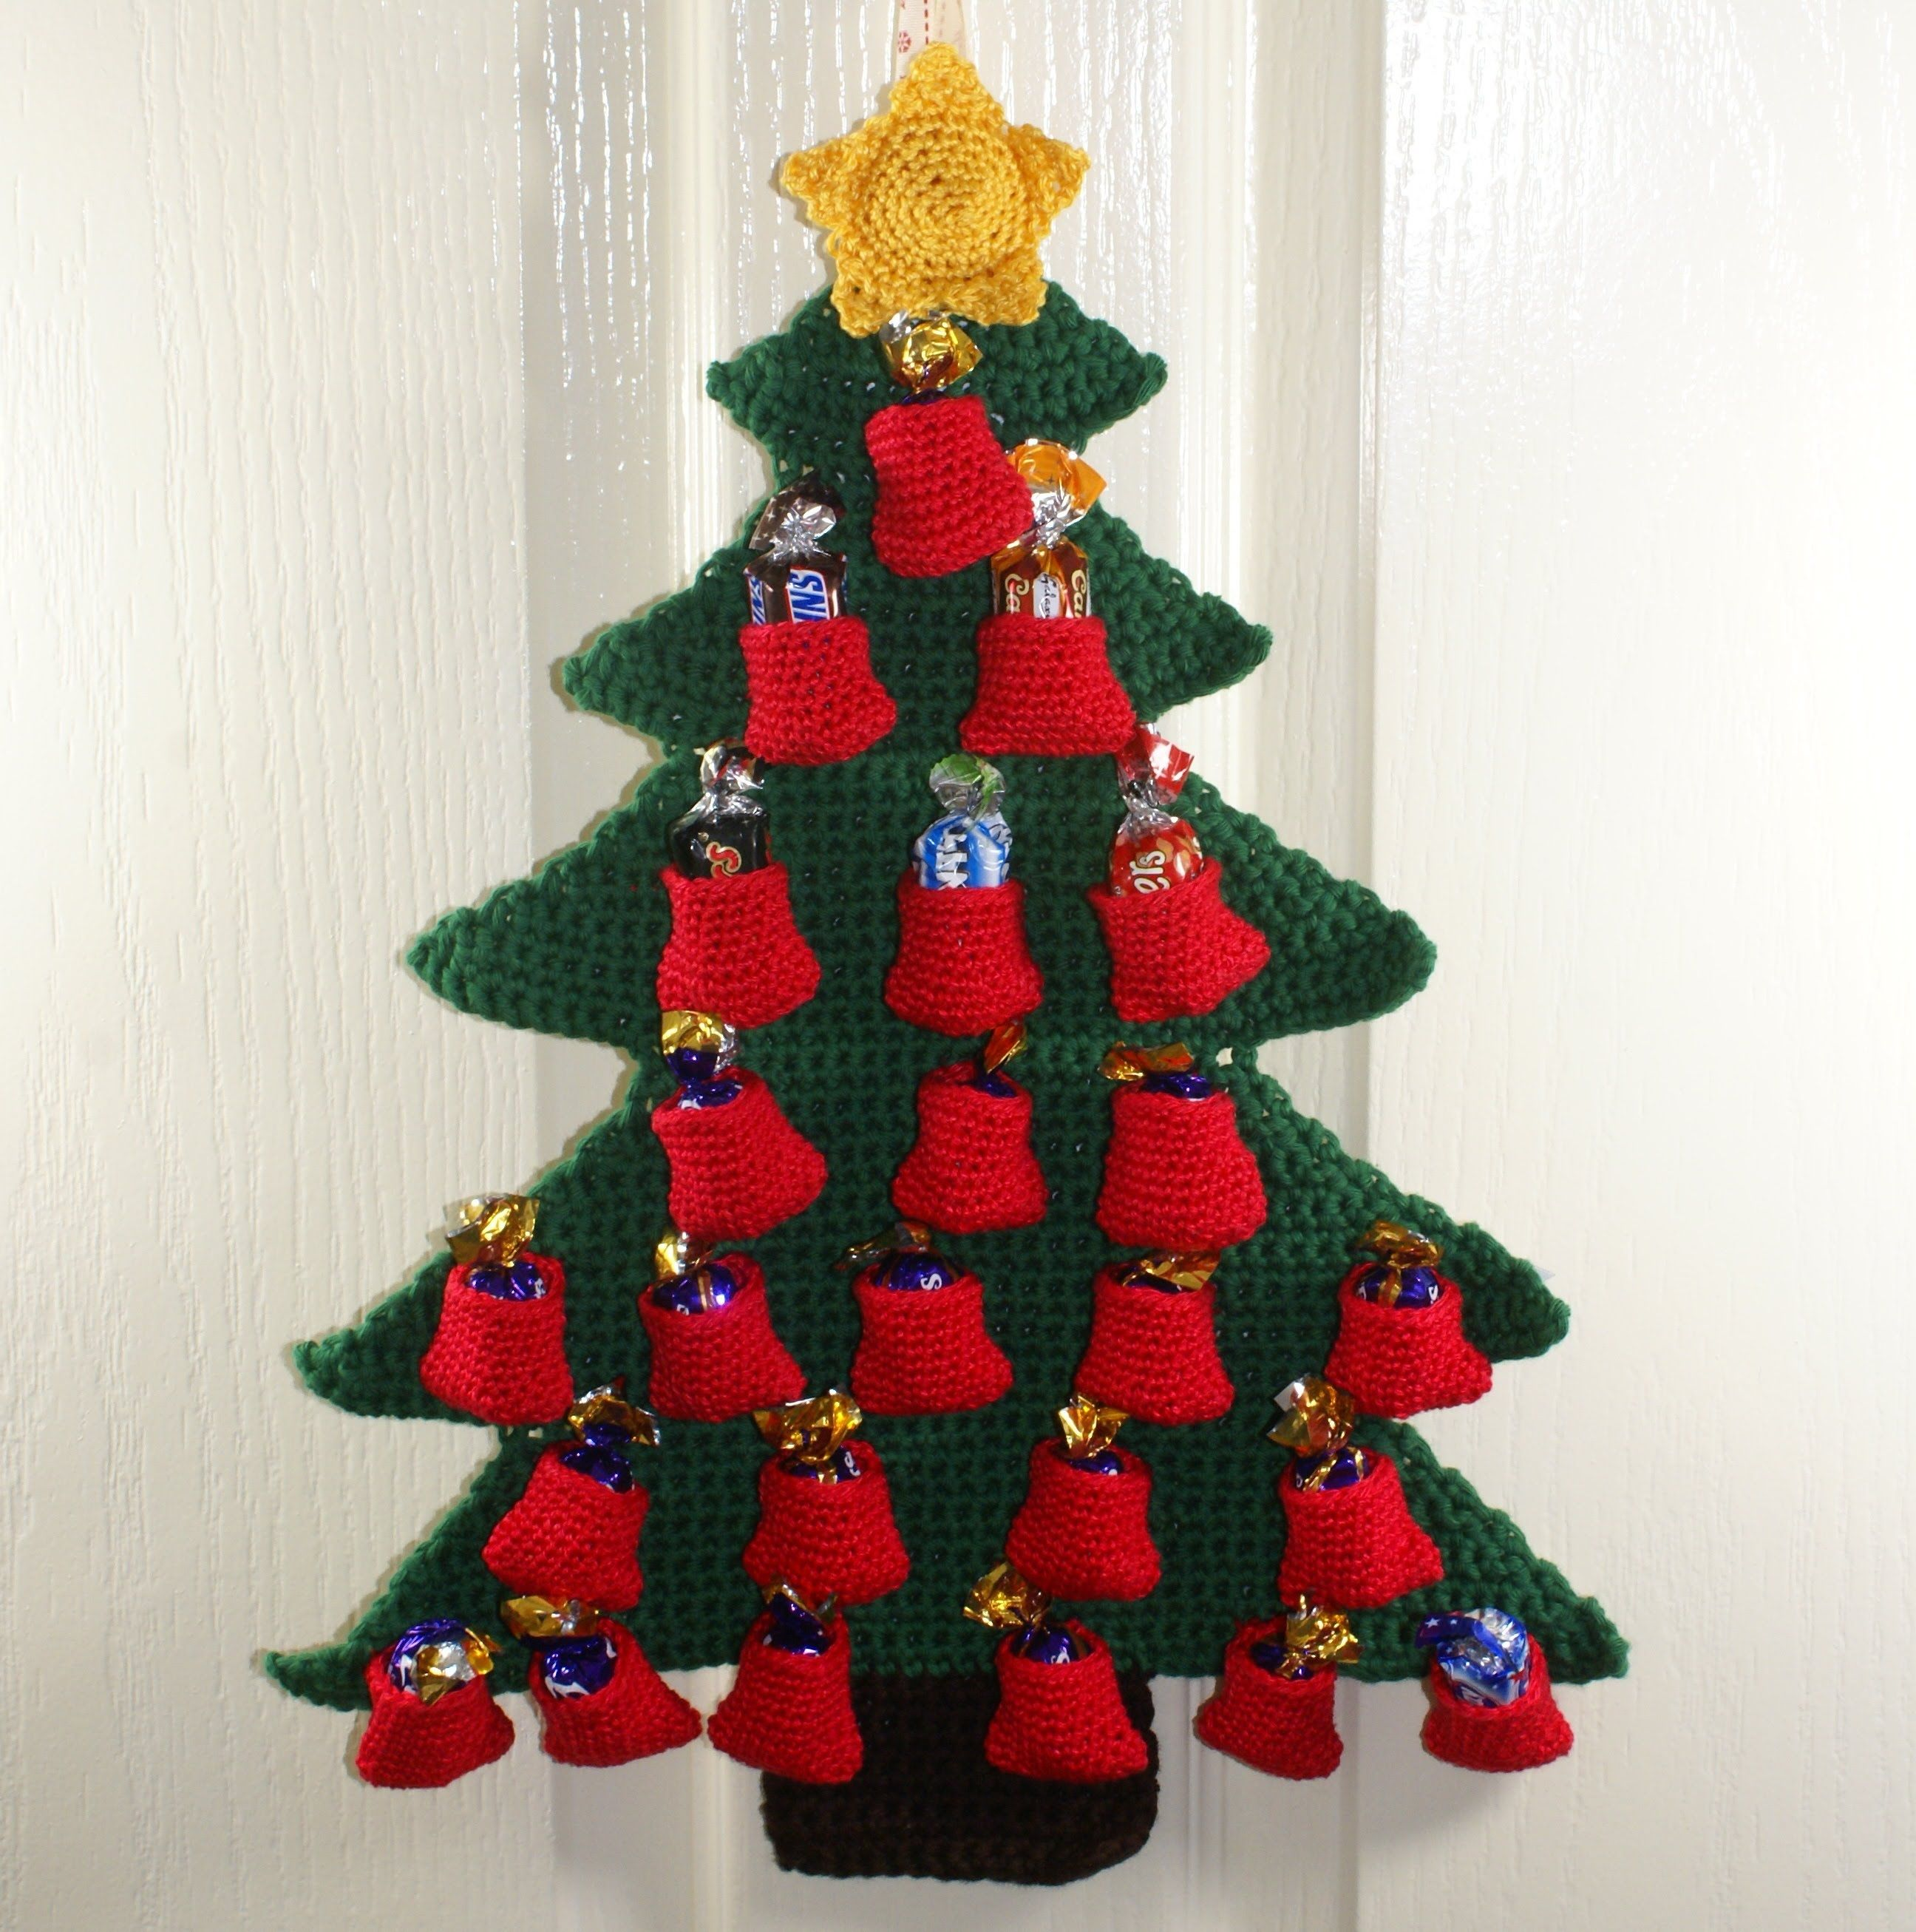 Free crochet christmas tree ornament patterns - How To Make A Crochet Christmas Tree Advent Calendar The Pockets 3